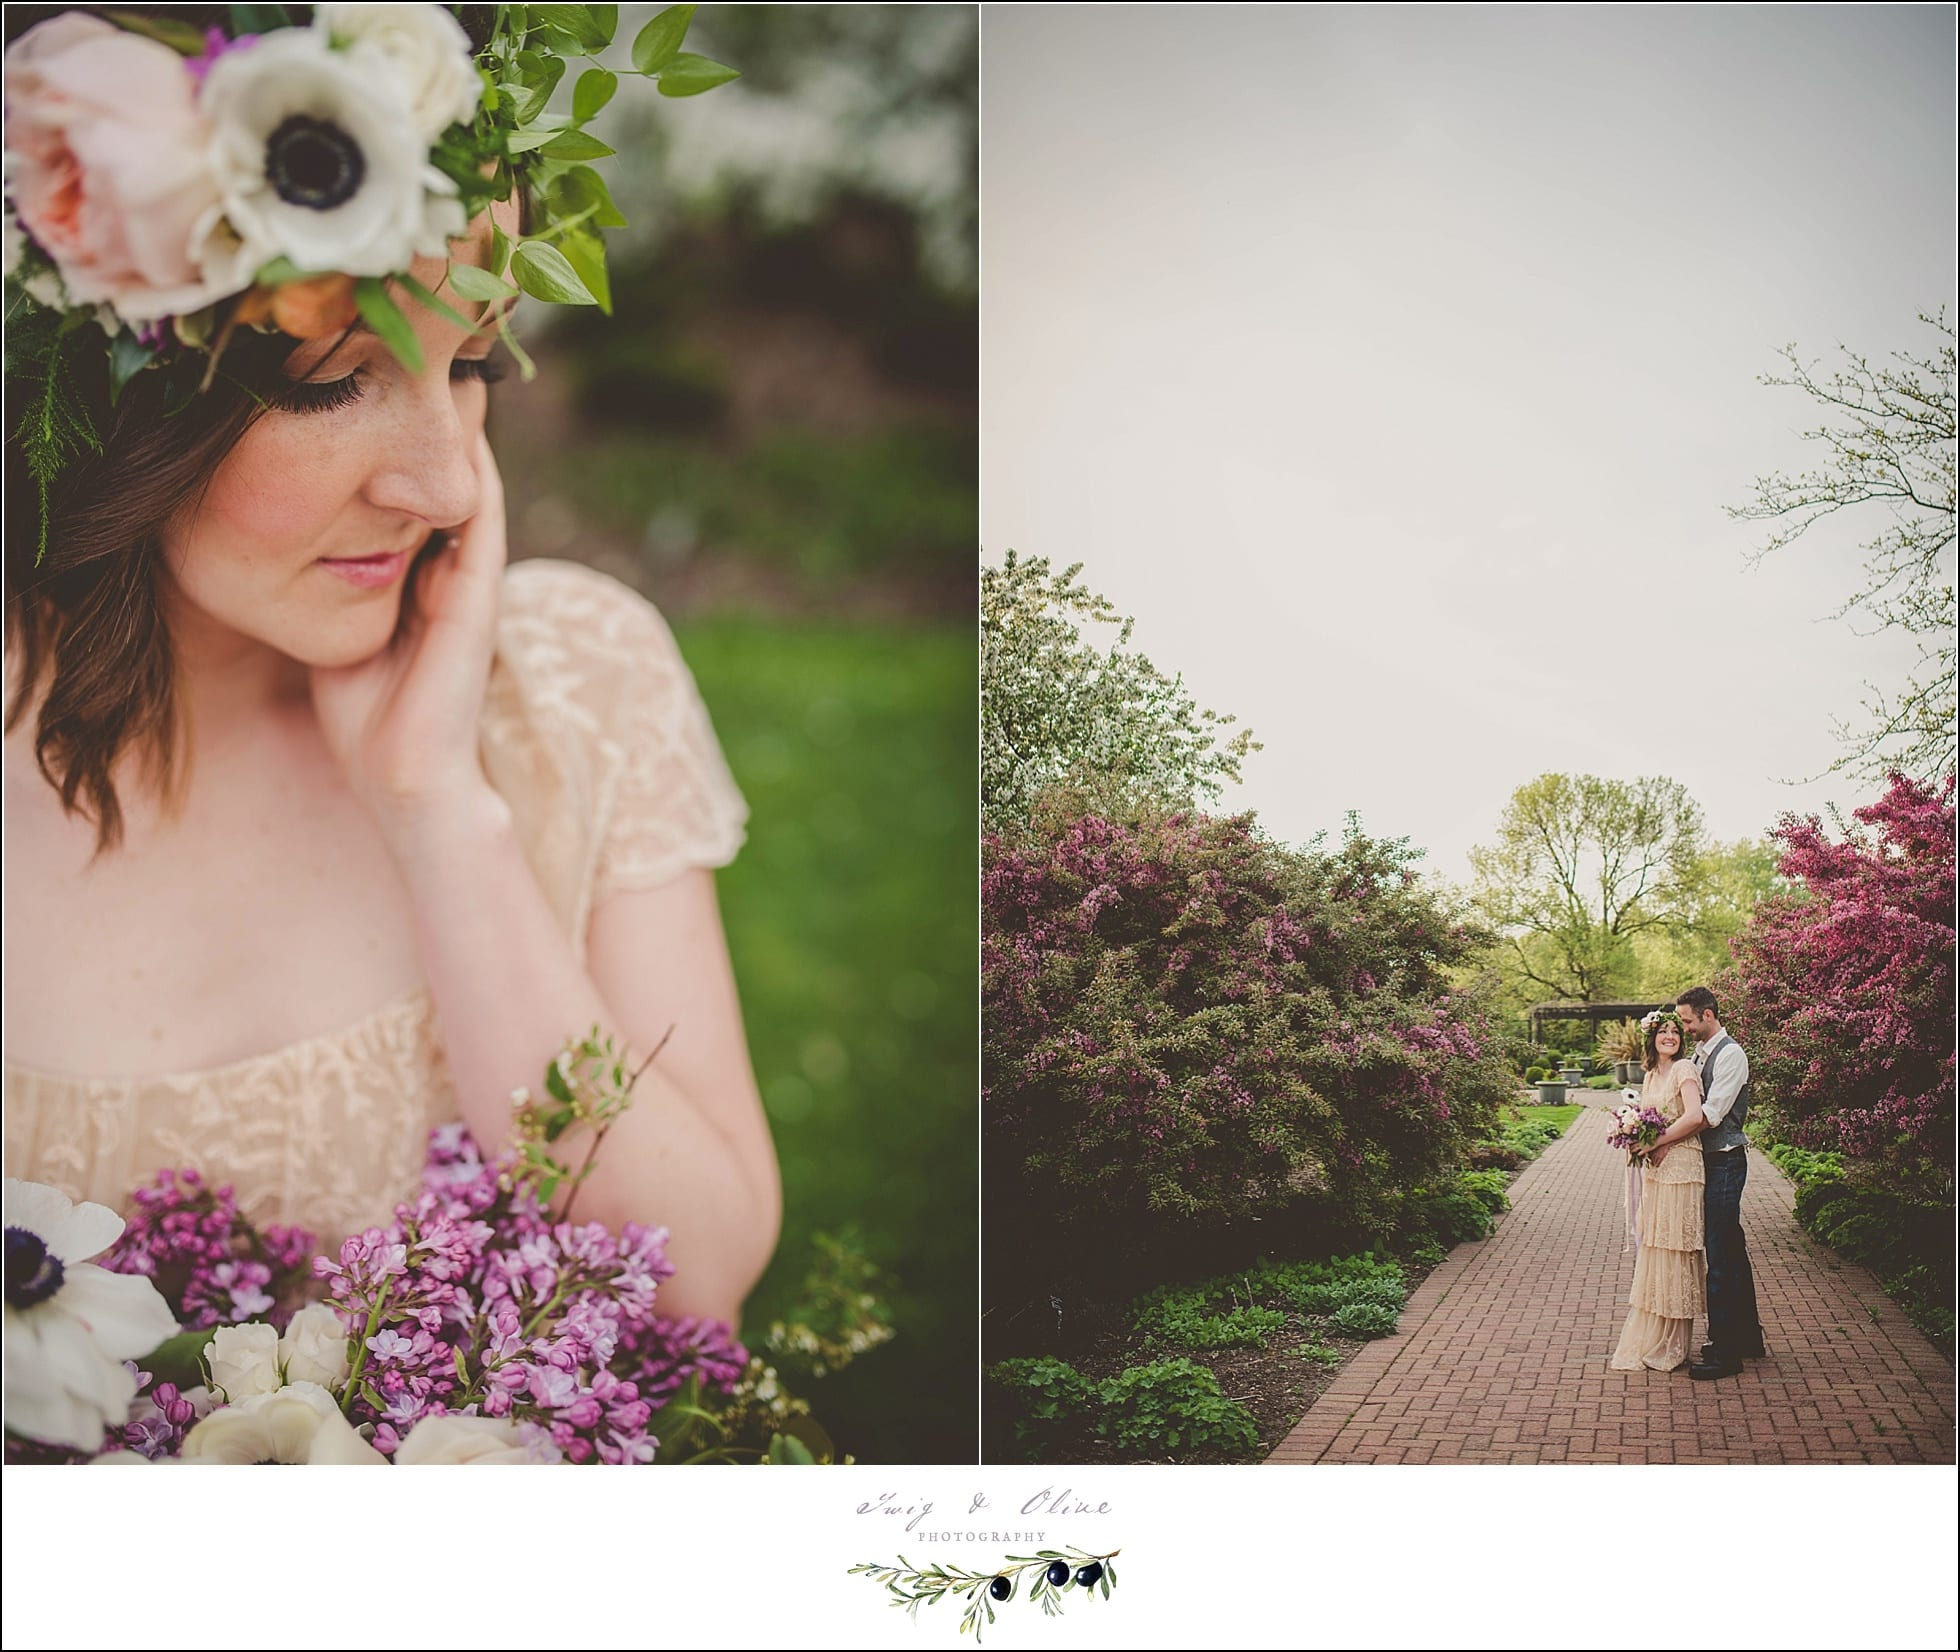 Twig Olive Photographywedding Photography And Business